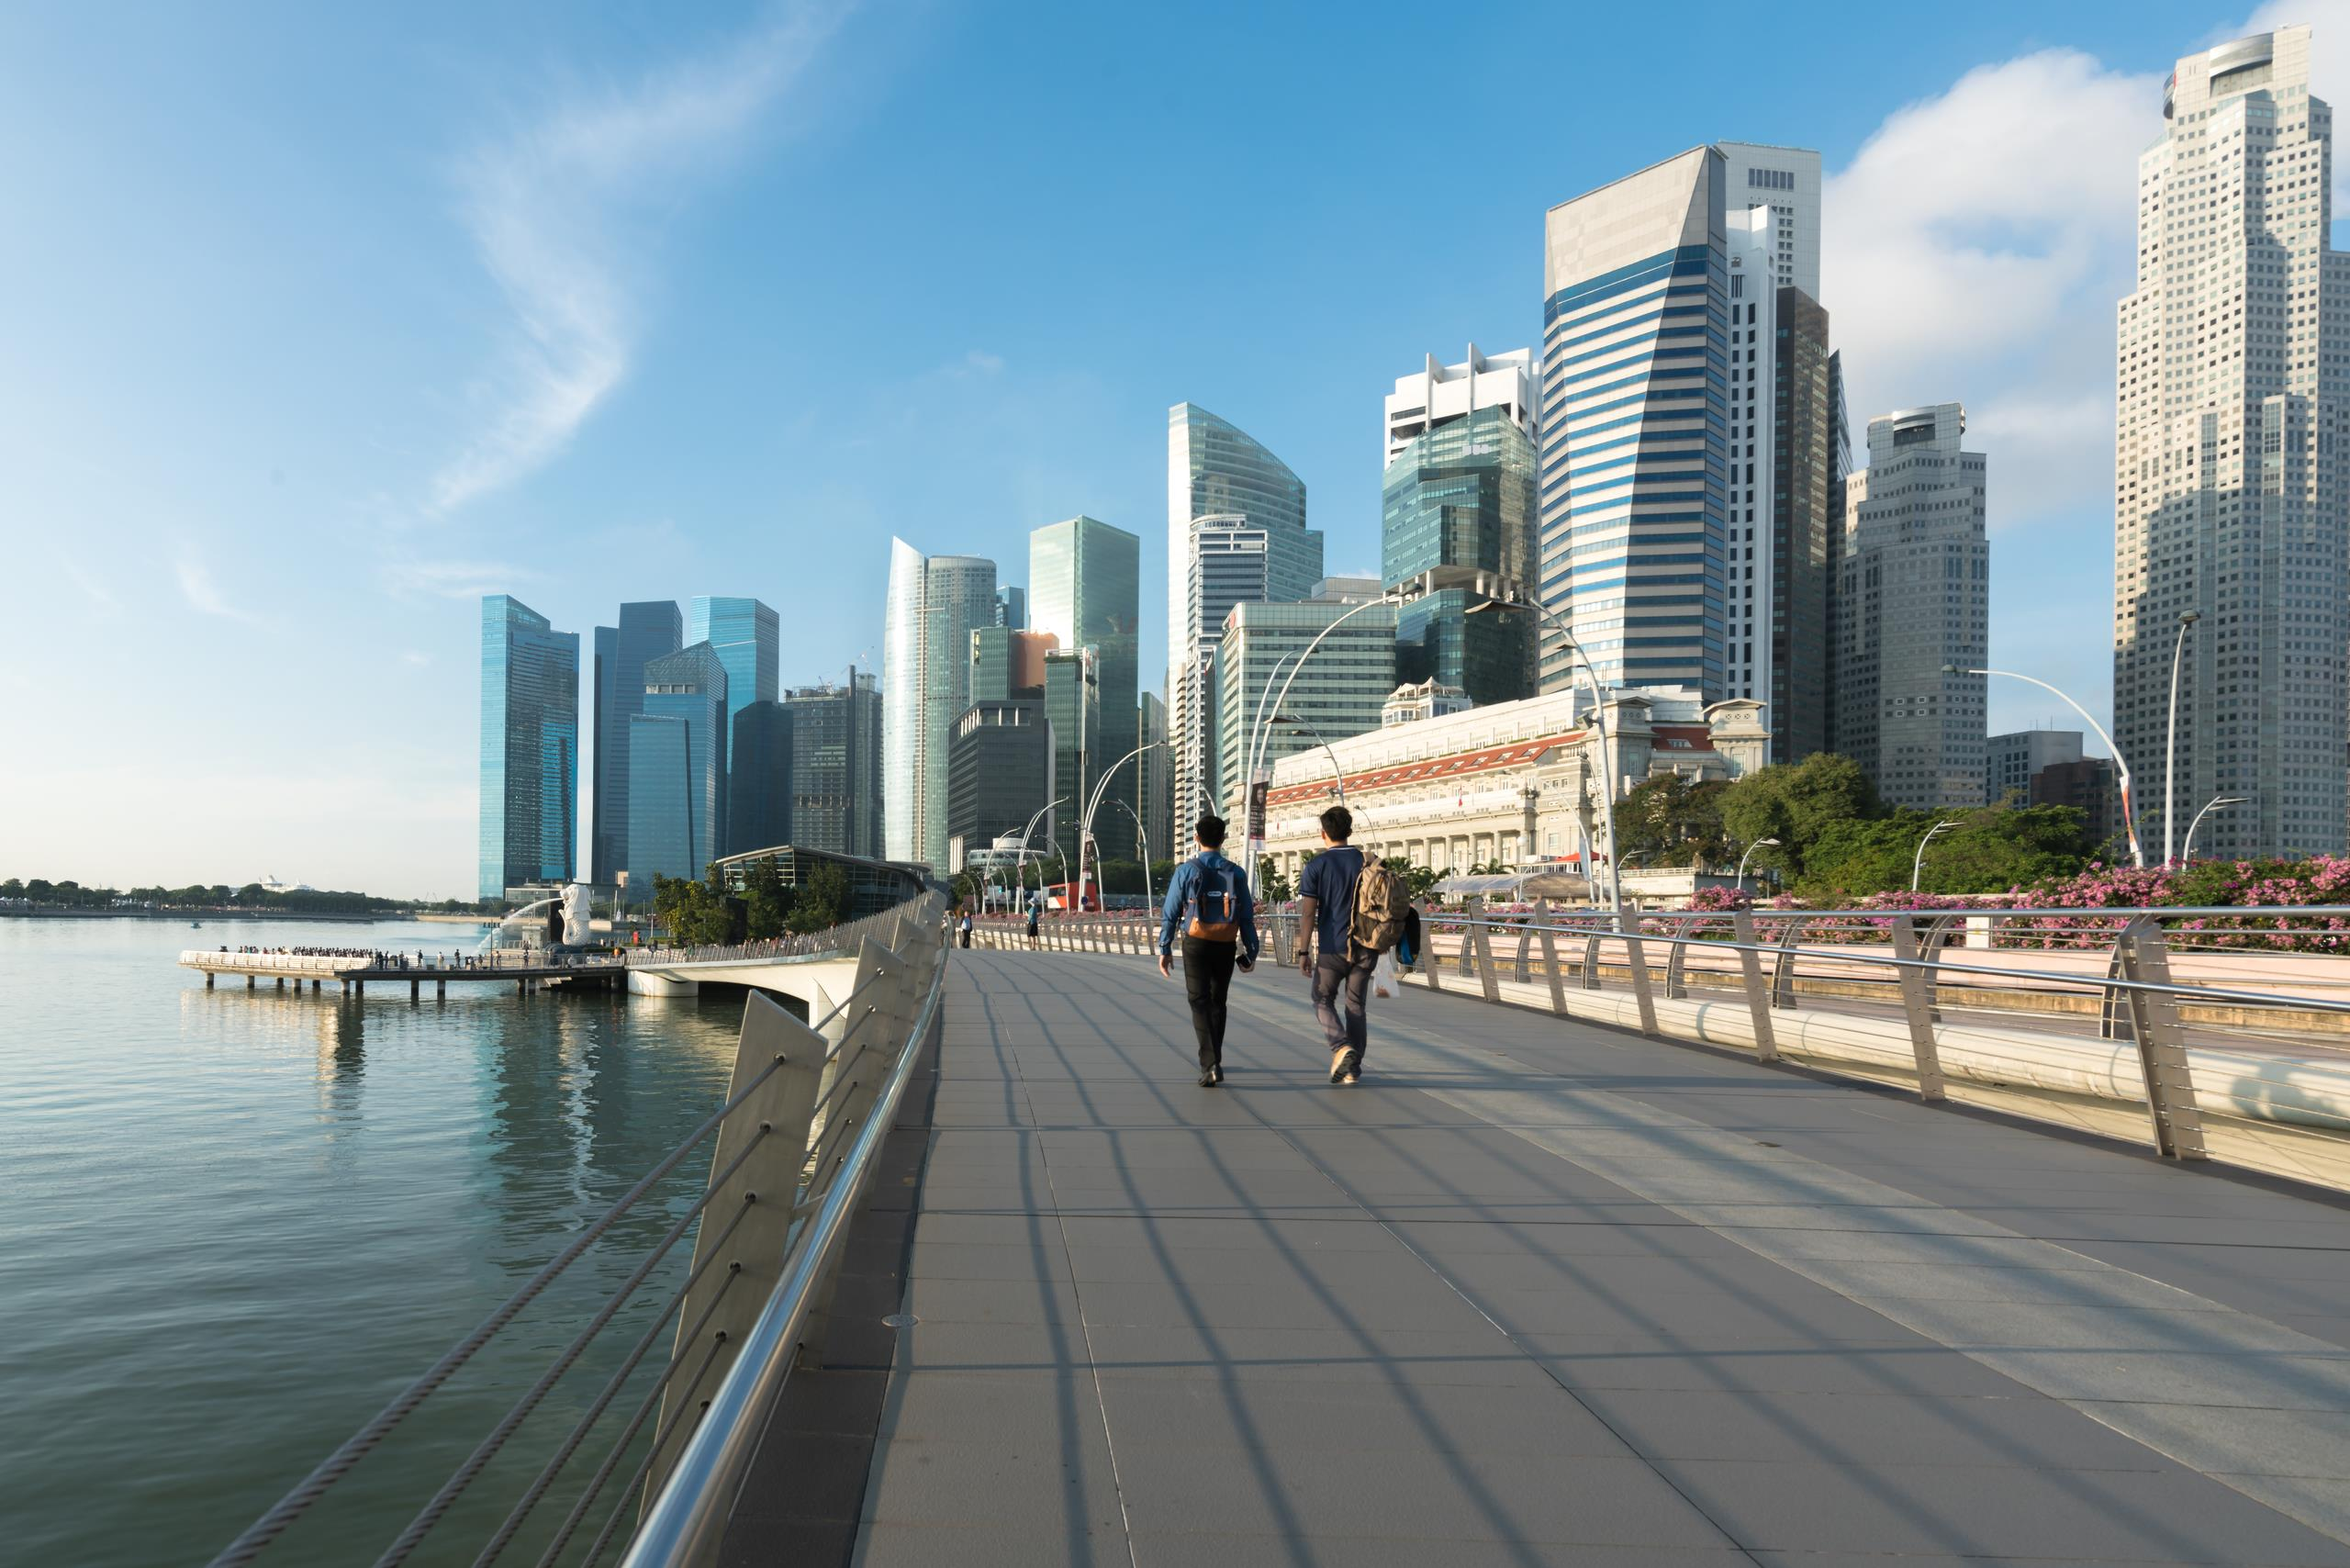 View looking down the length of Marina Bay in Singapore